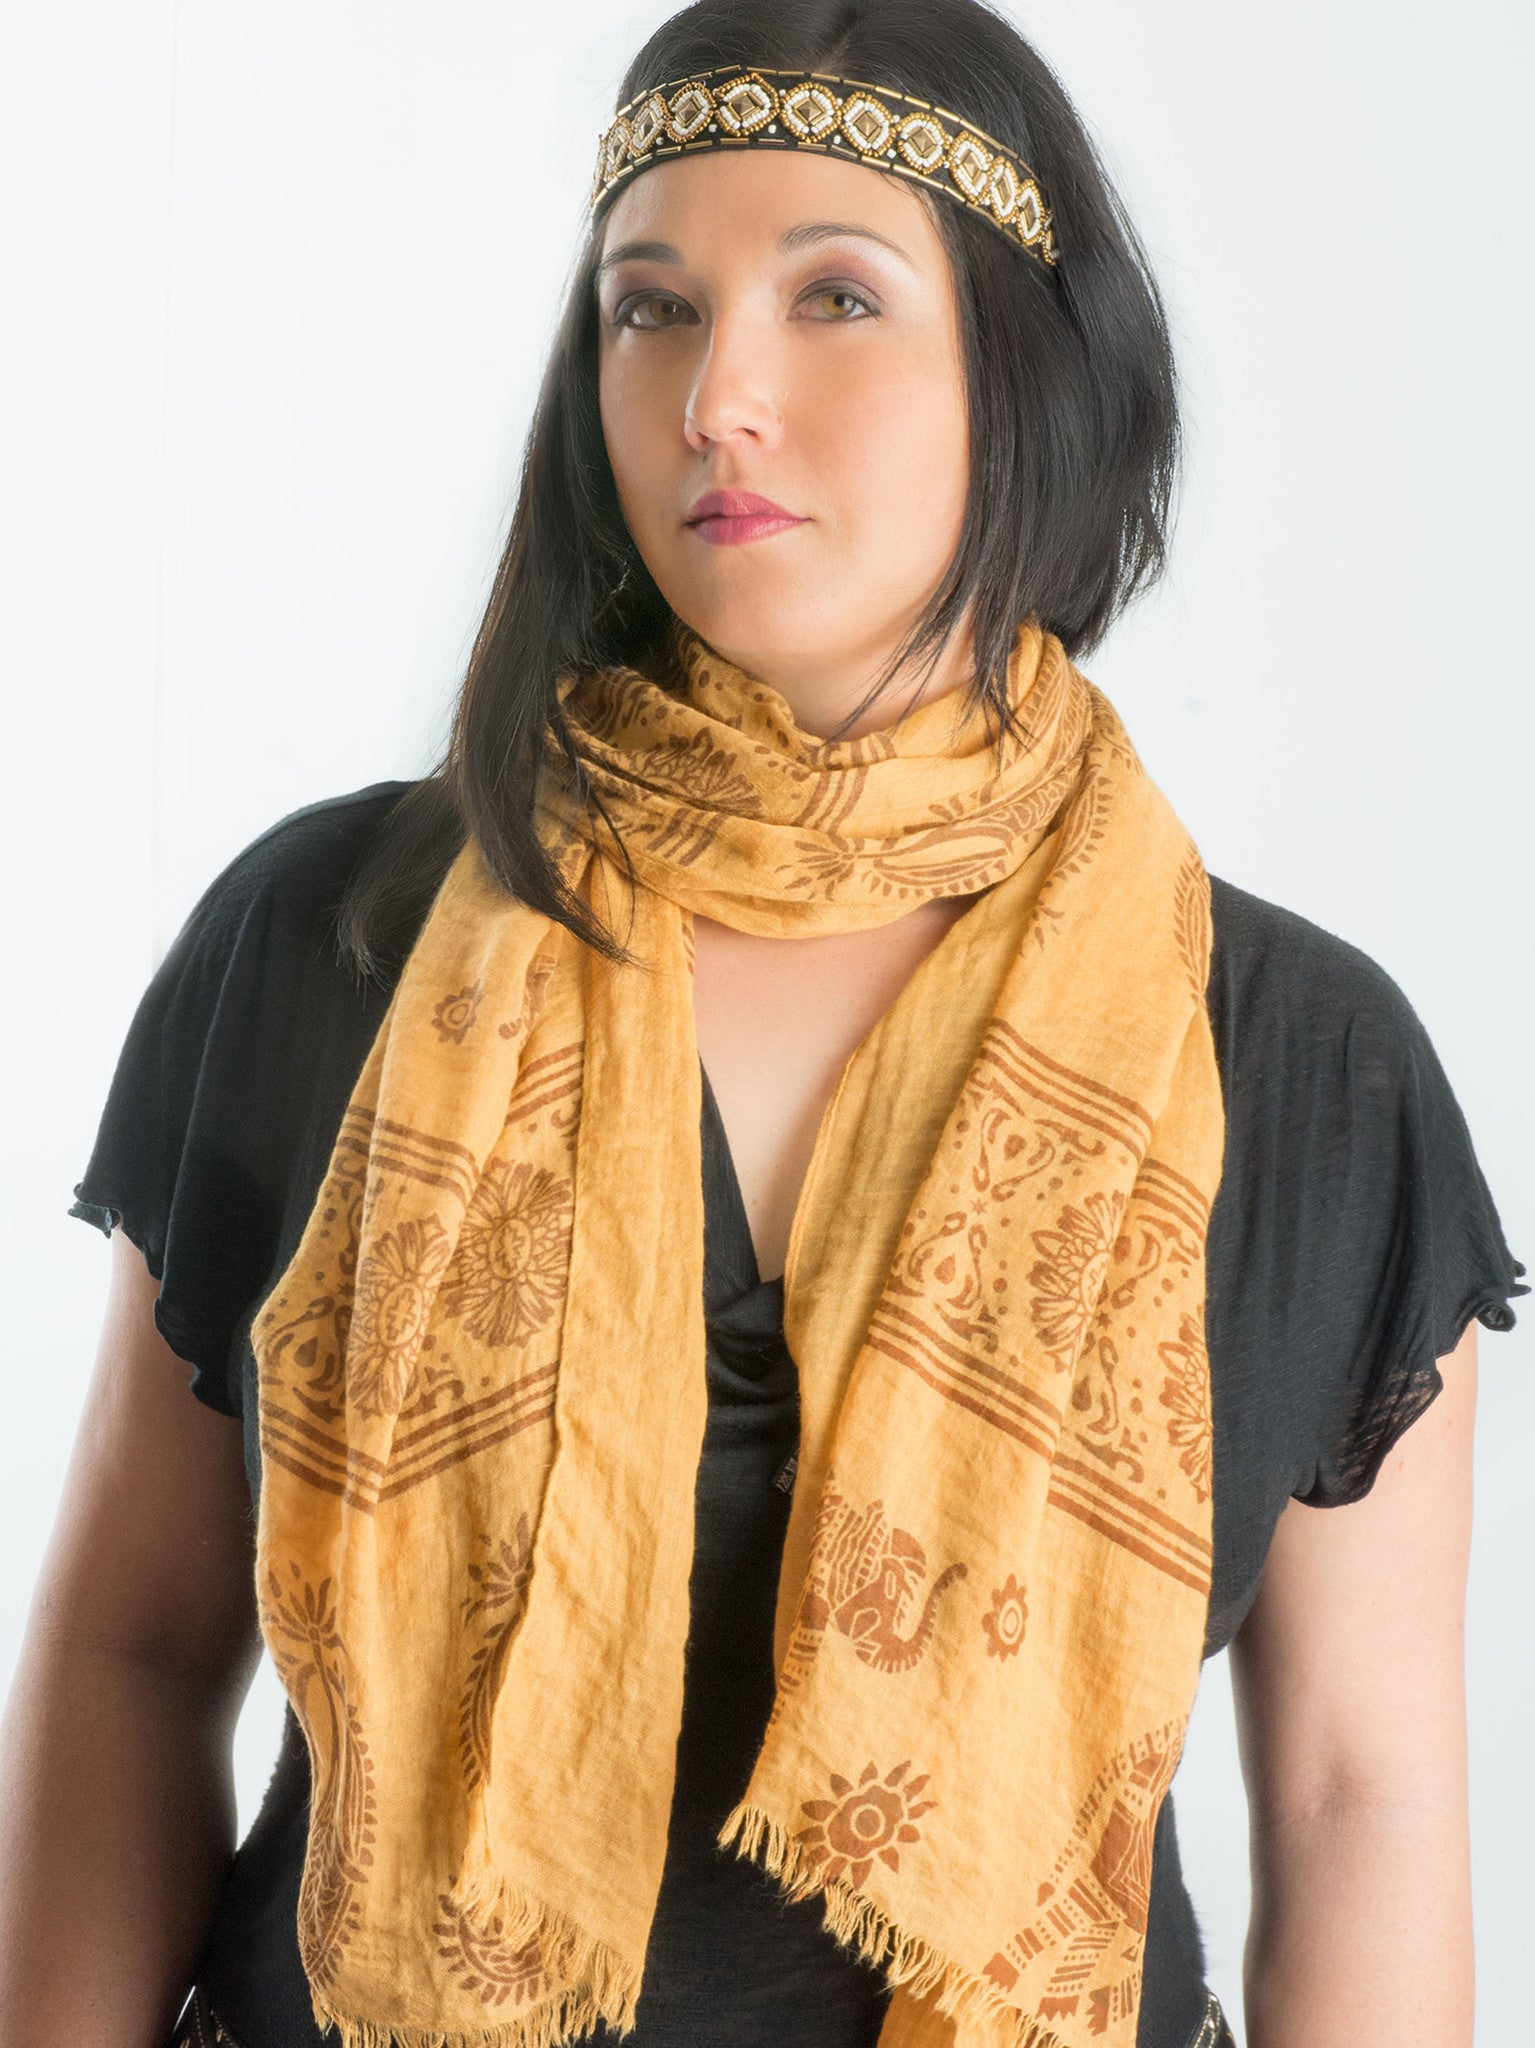 Scarves - Gajai Shawl,100% Cotton Paisley Indian Elephant Print Scarf -() Bohomonde  - 2